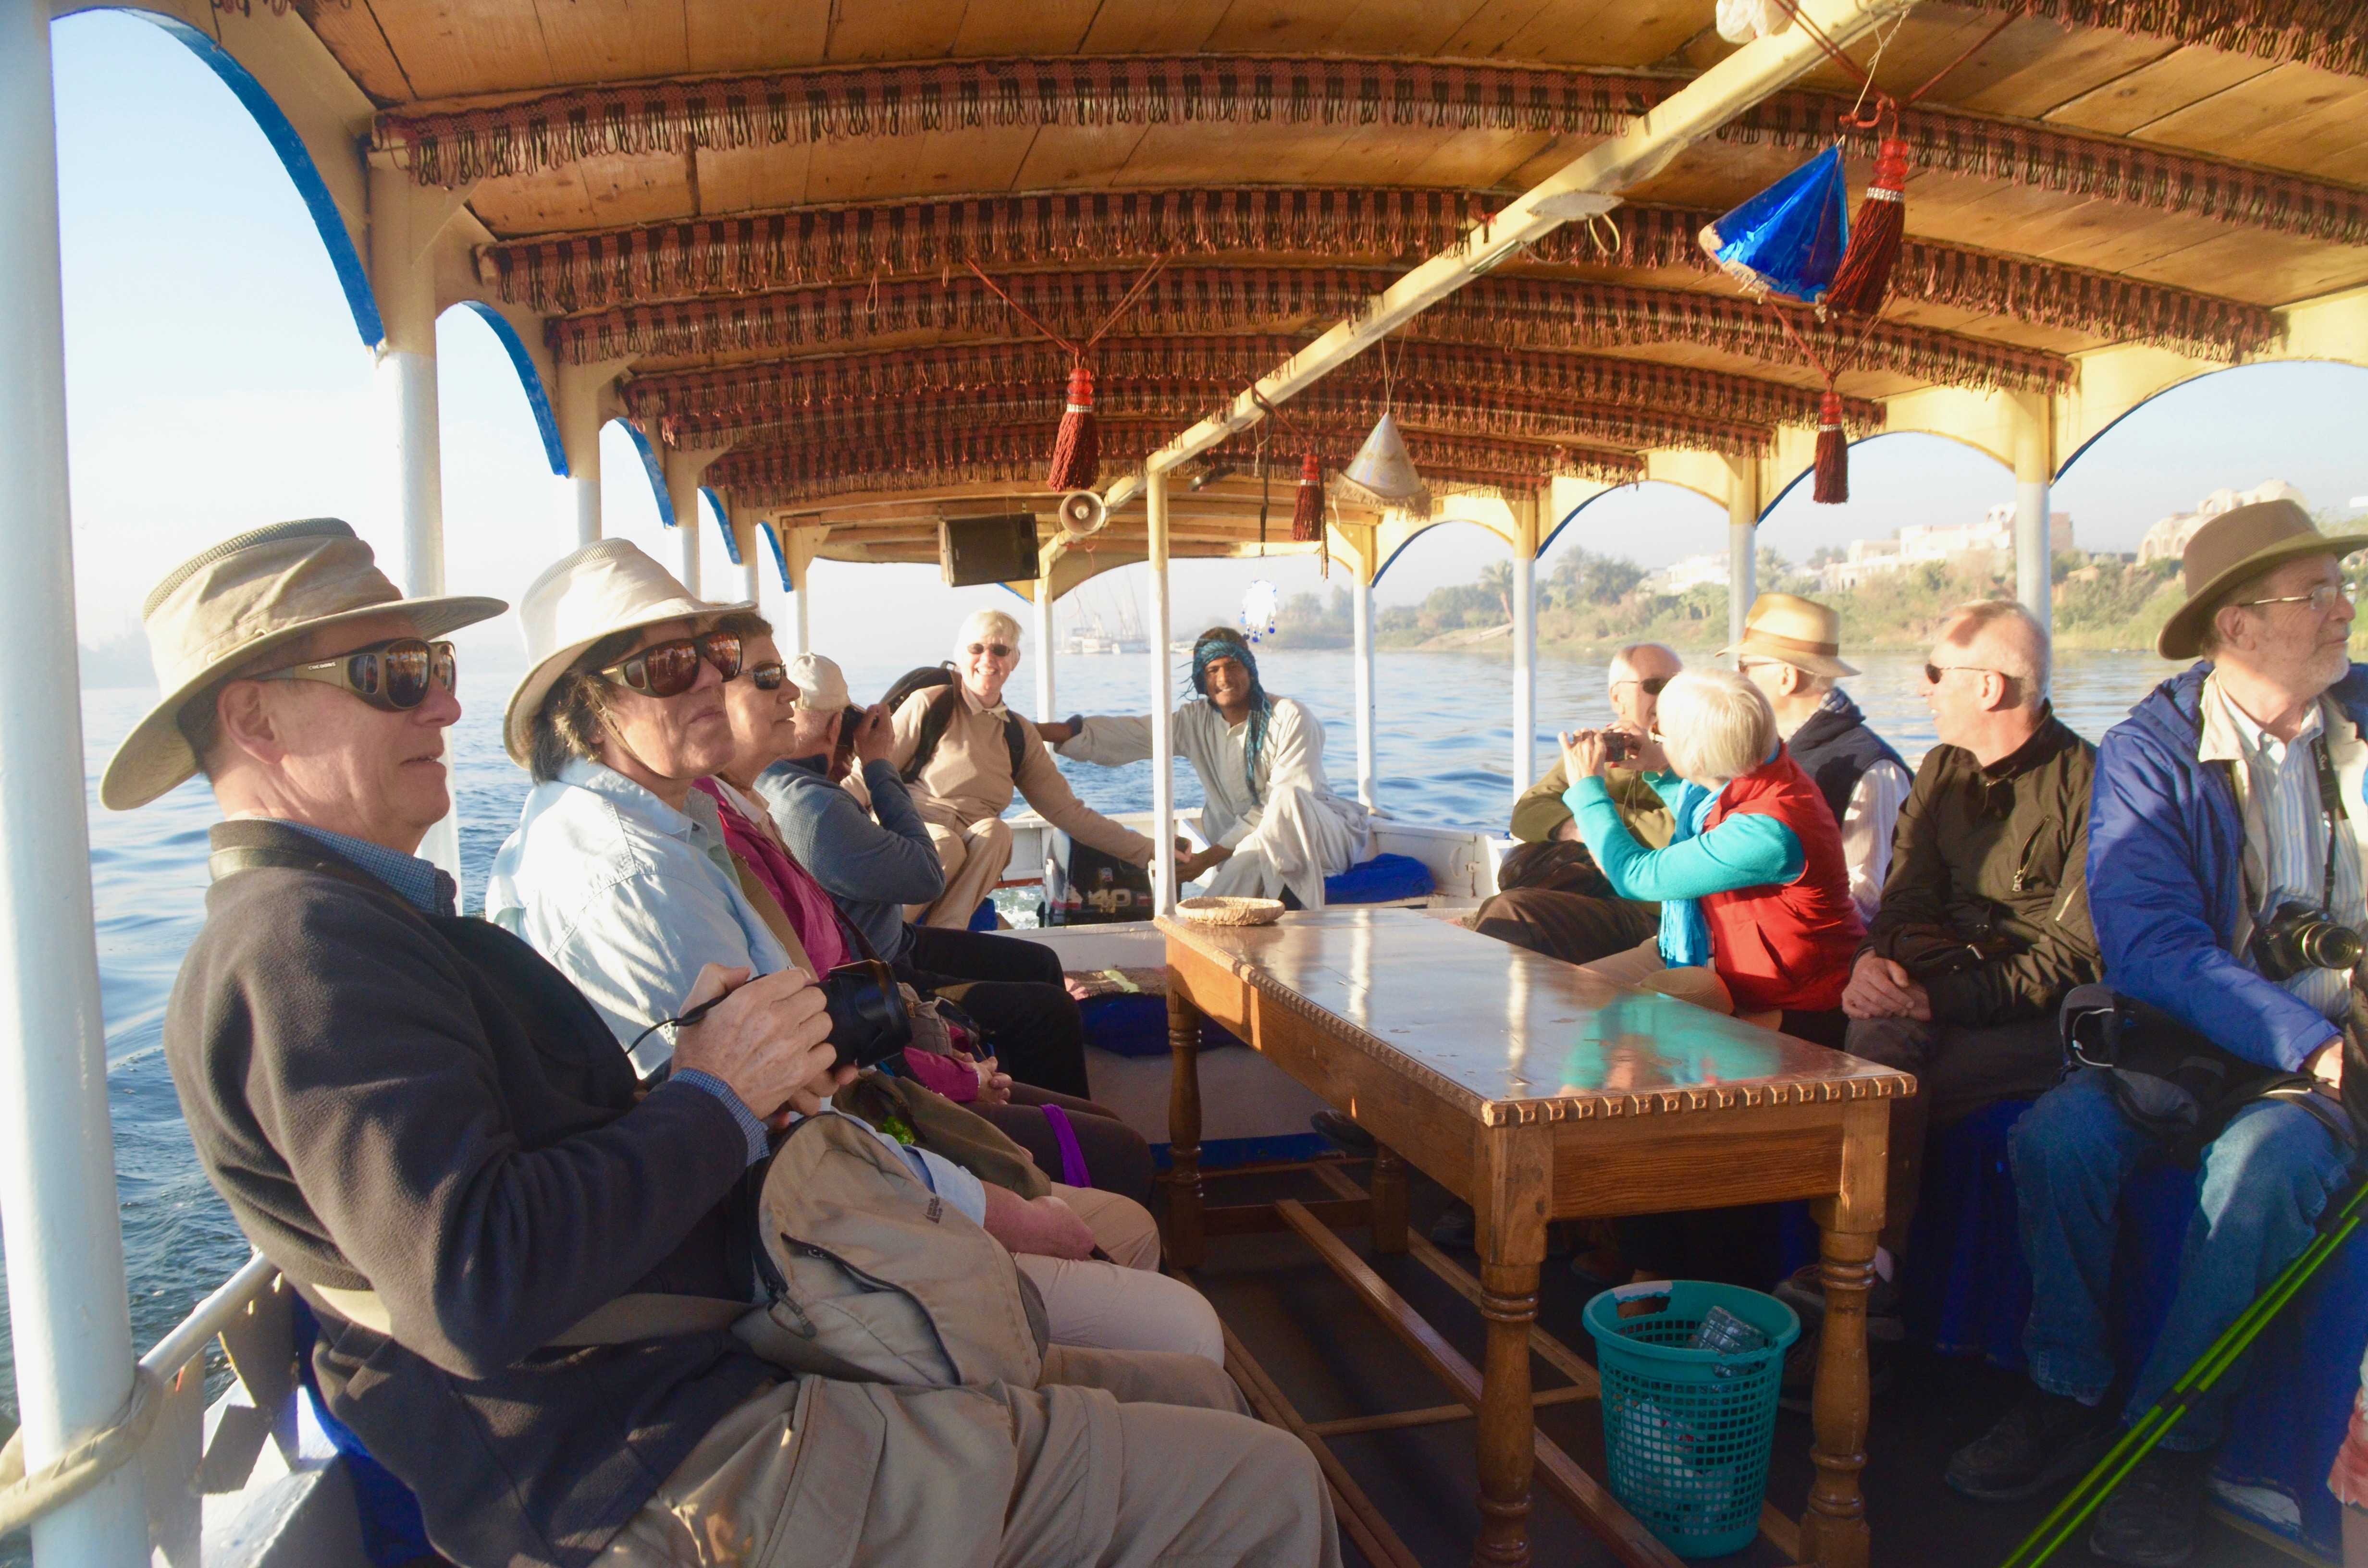 Crossing the Nile to the Valley of the Kings